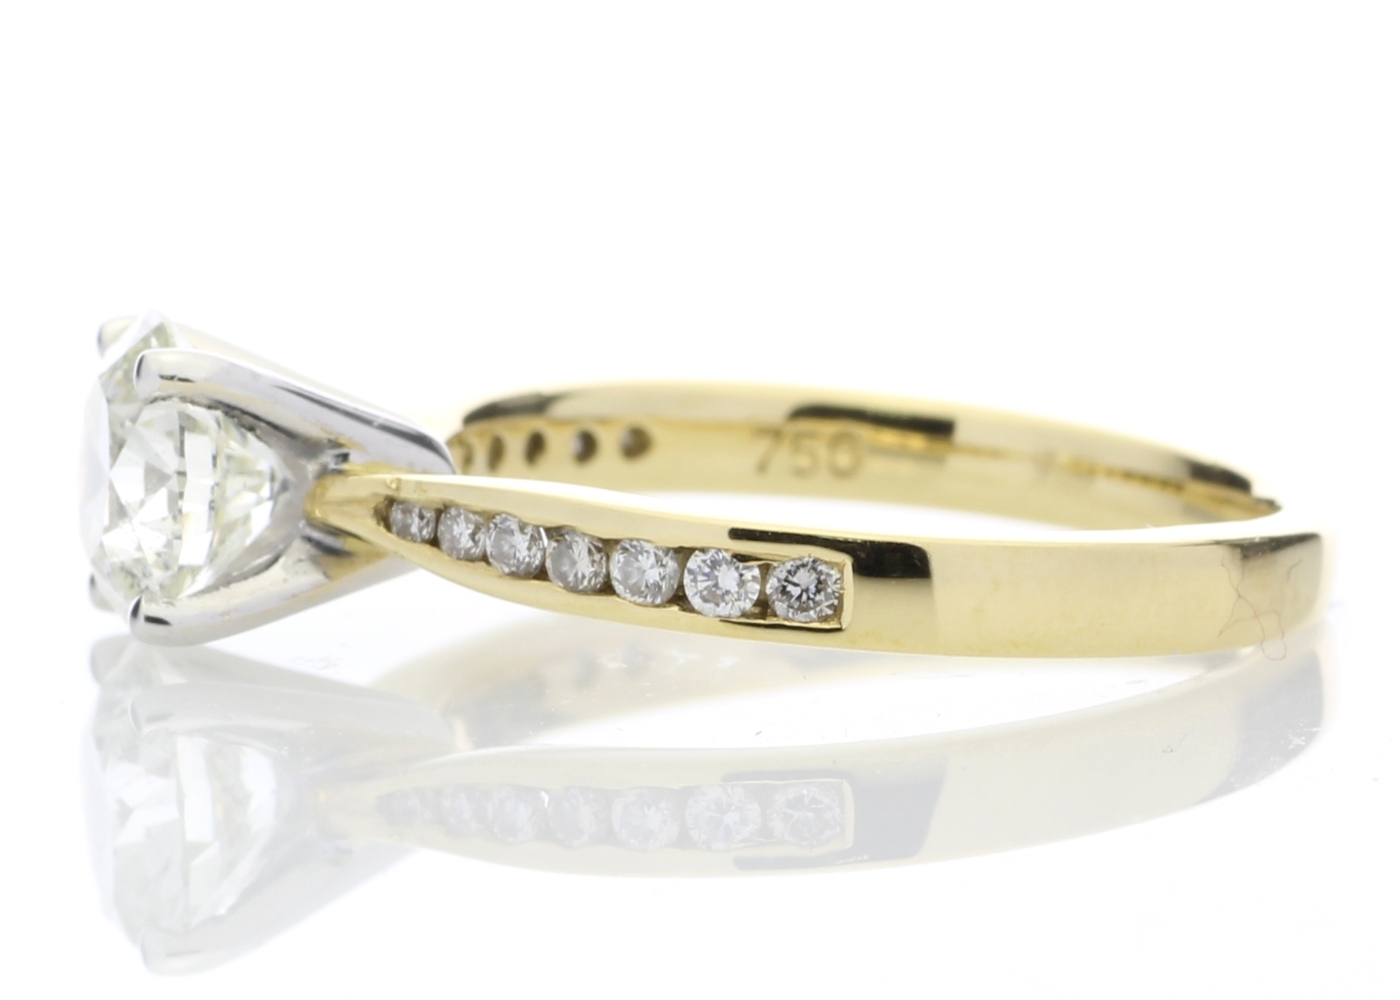 18ct Yellow Gold Diamond Ring With Stone Set Shoulders 1.28 Carats - Image 3 of 5